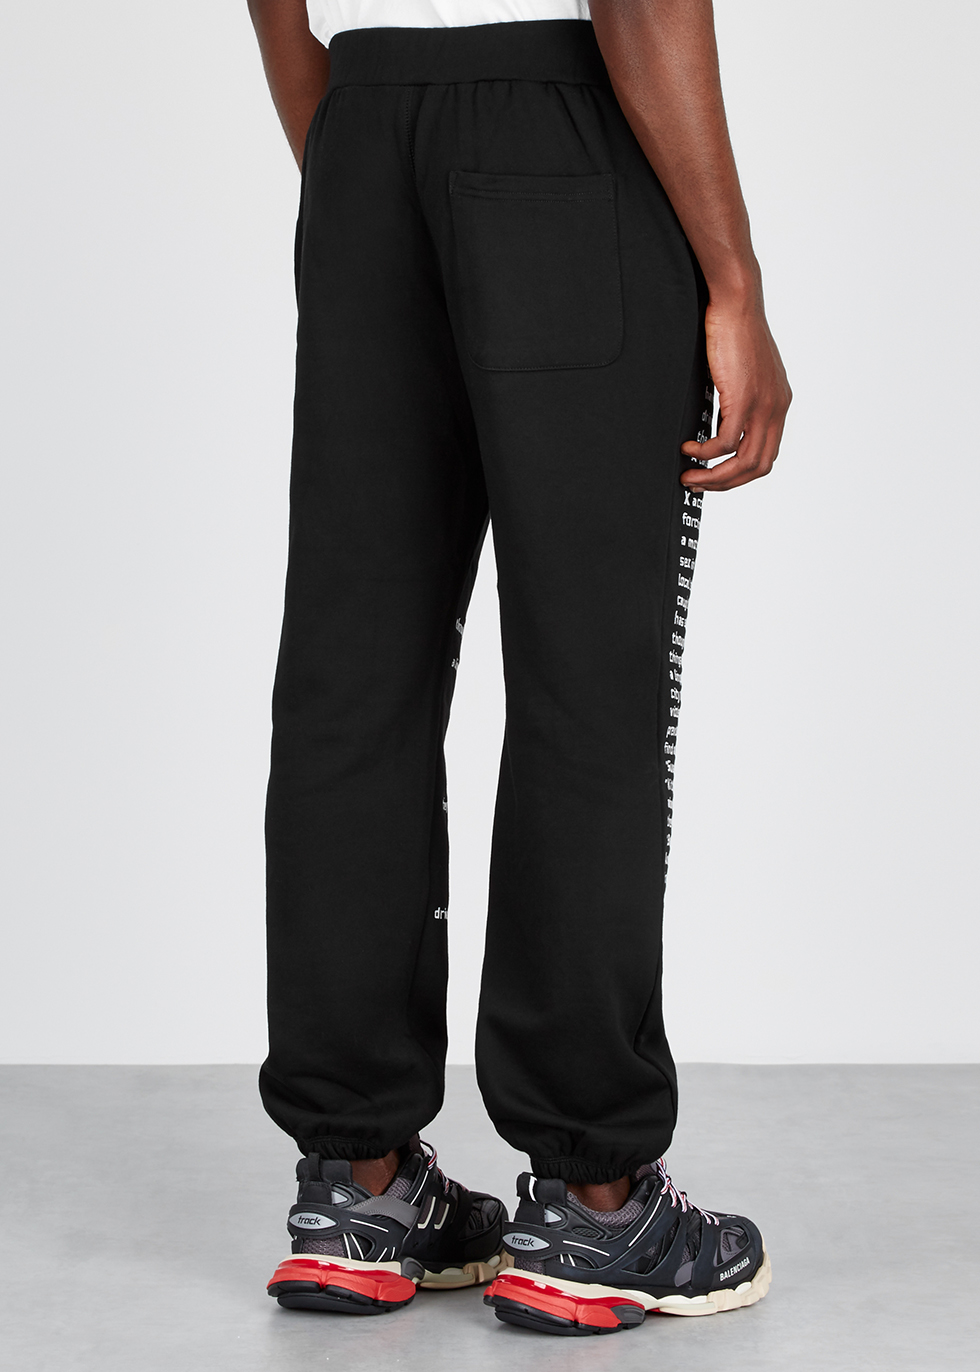 Teenage Lovers black embroidered sweatpants - Pleasures